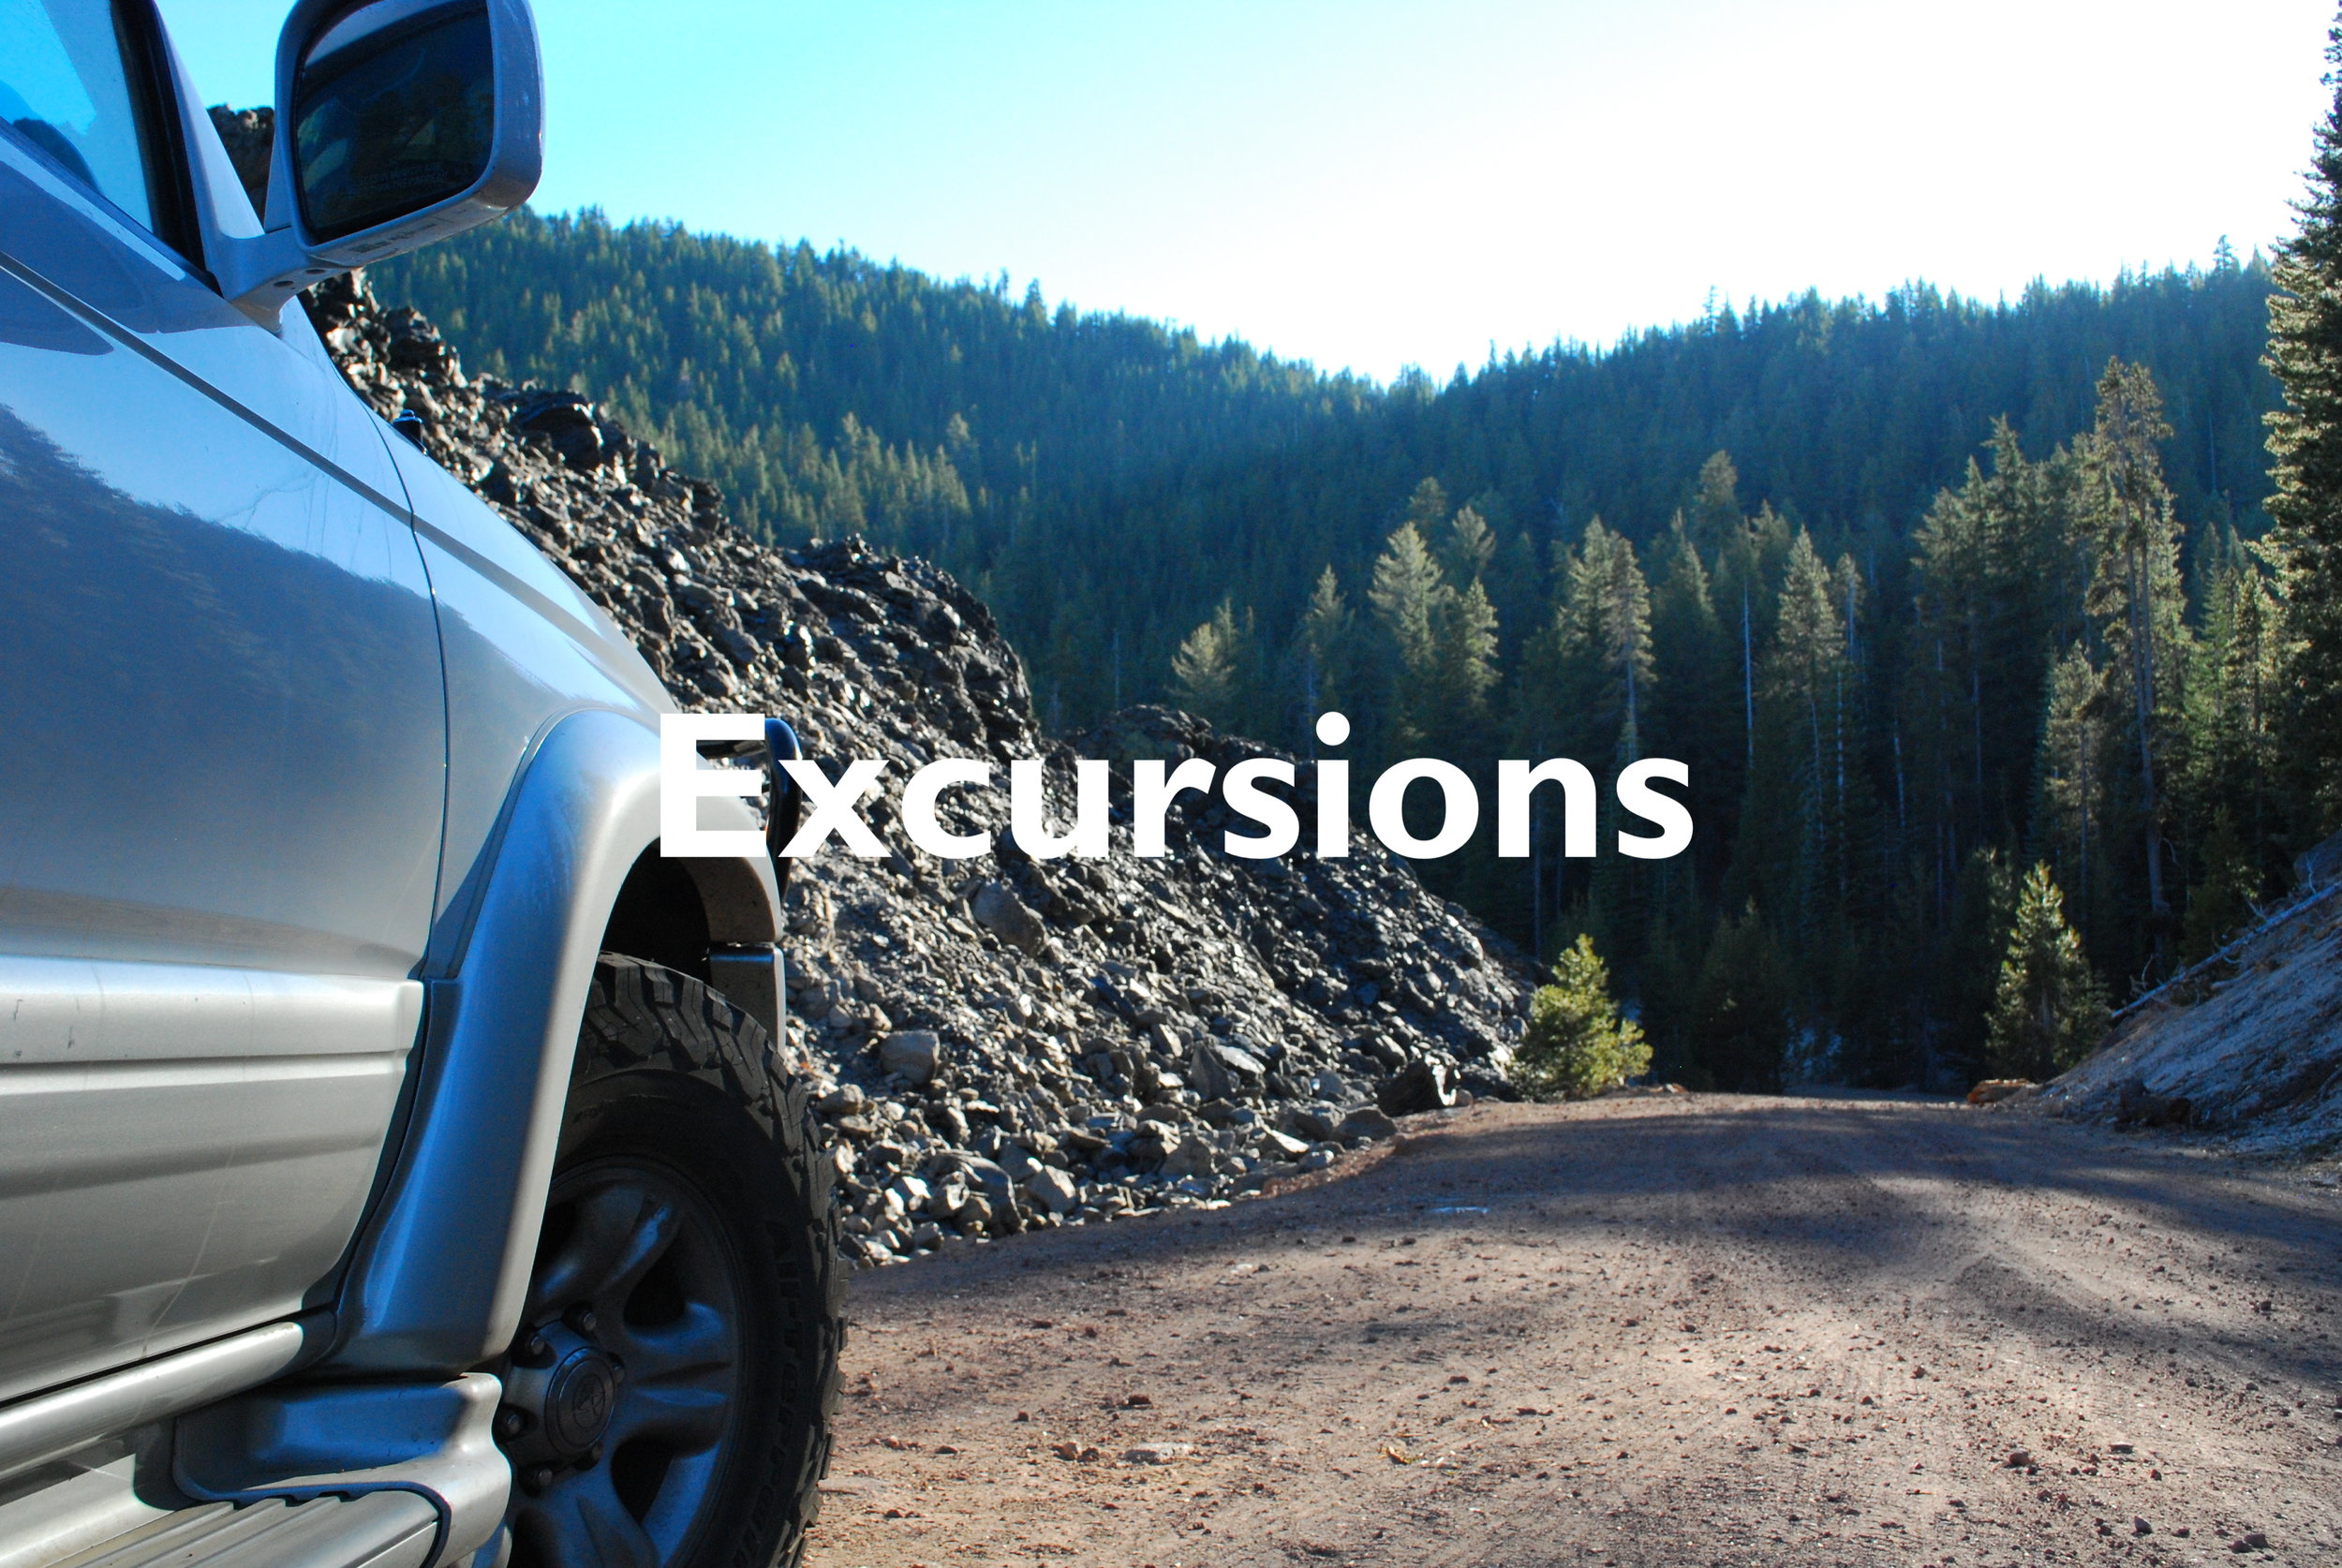 Click on the photo to learn more about our Excursion Experiences, here at Energy is Everything Experience in Mount Shasta, CA